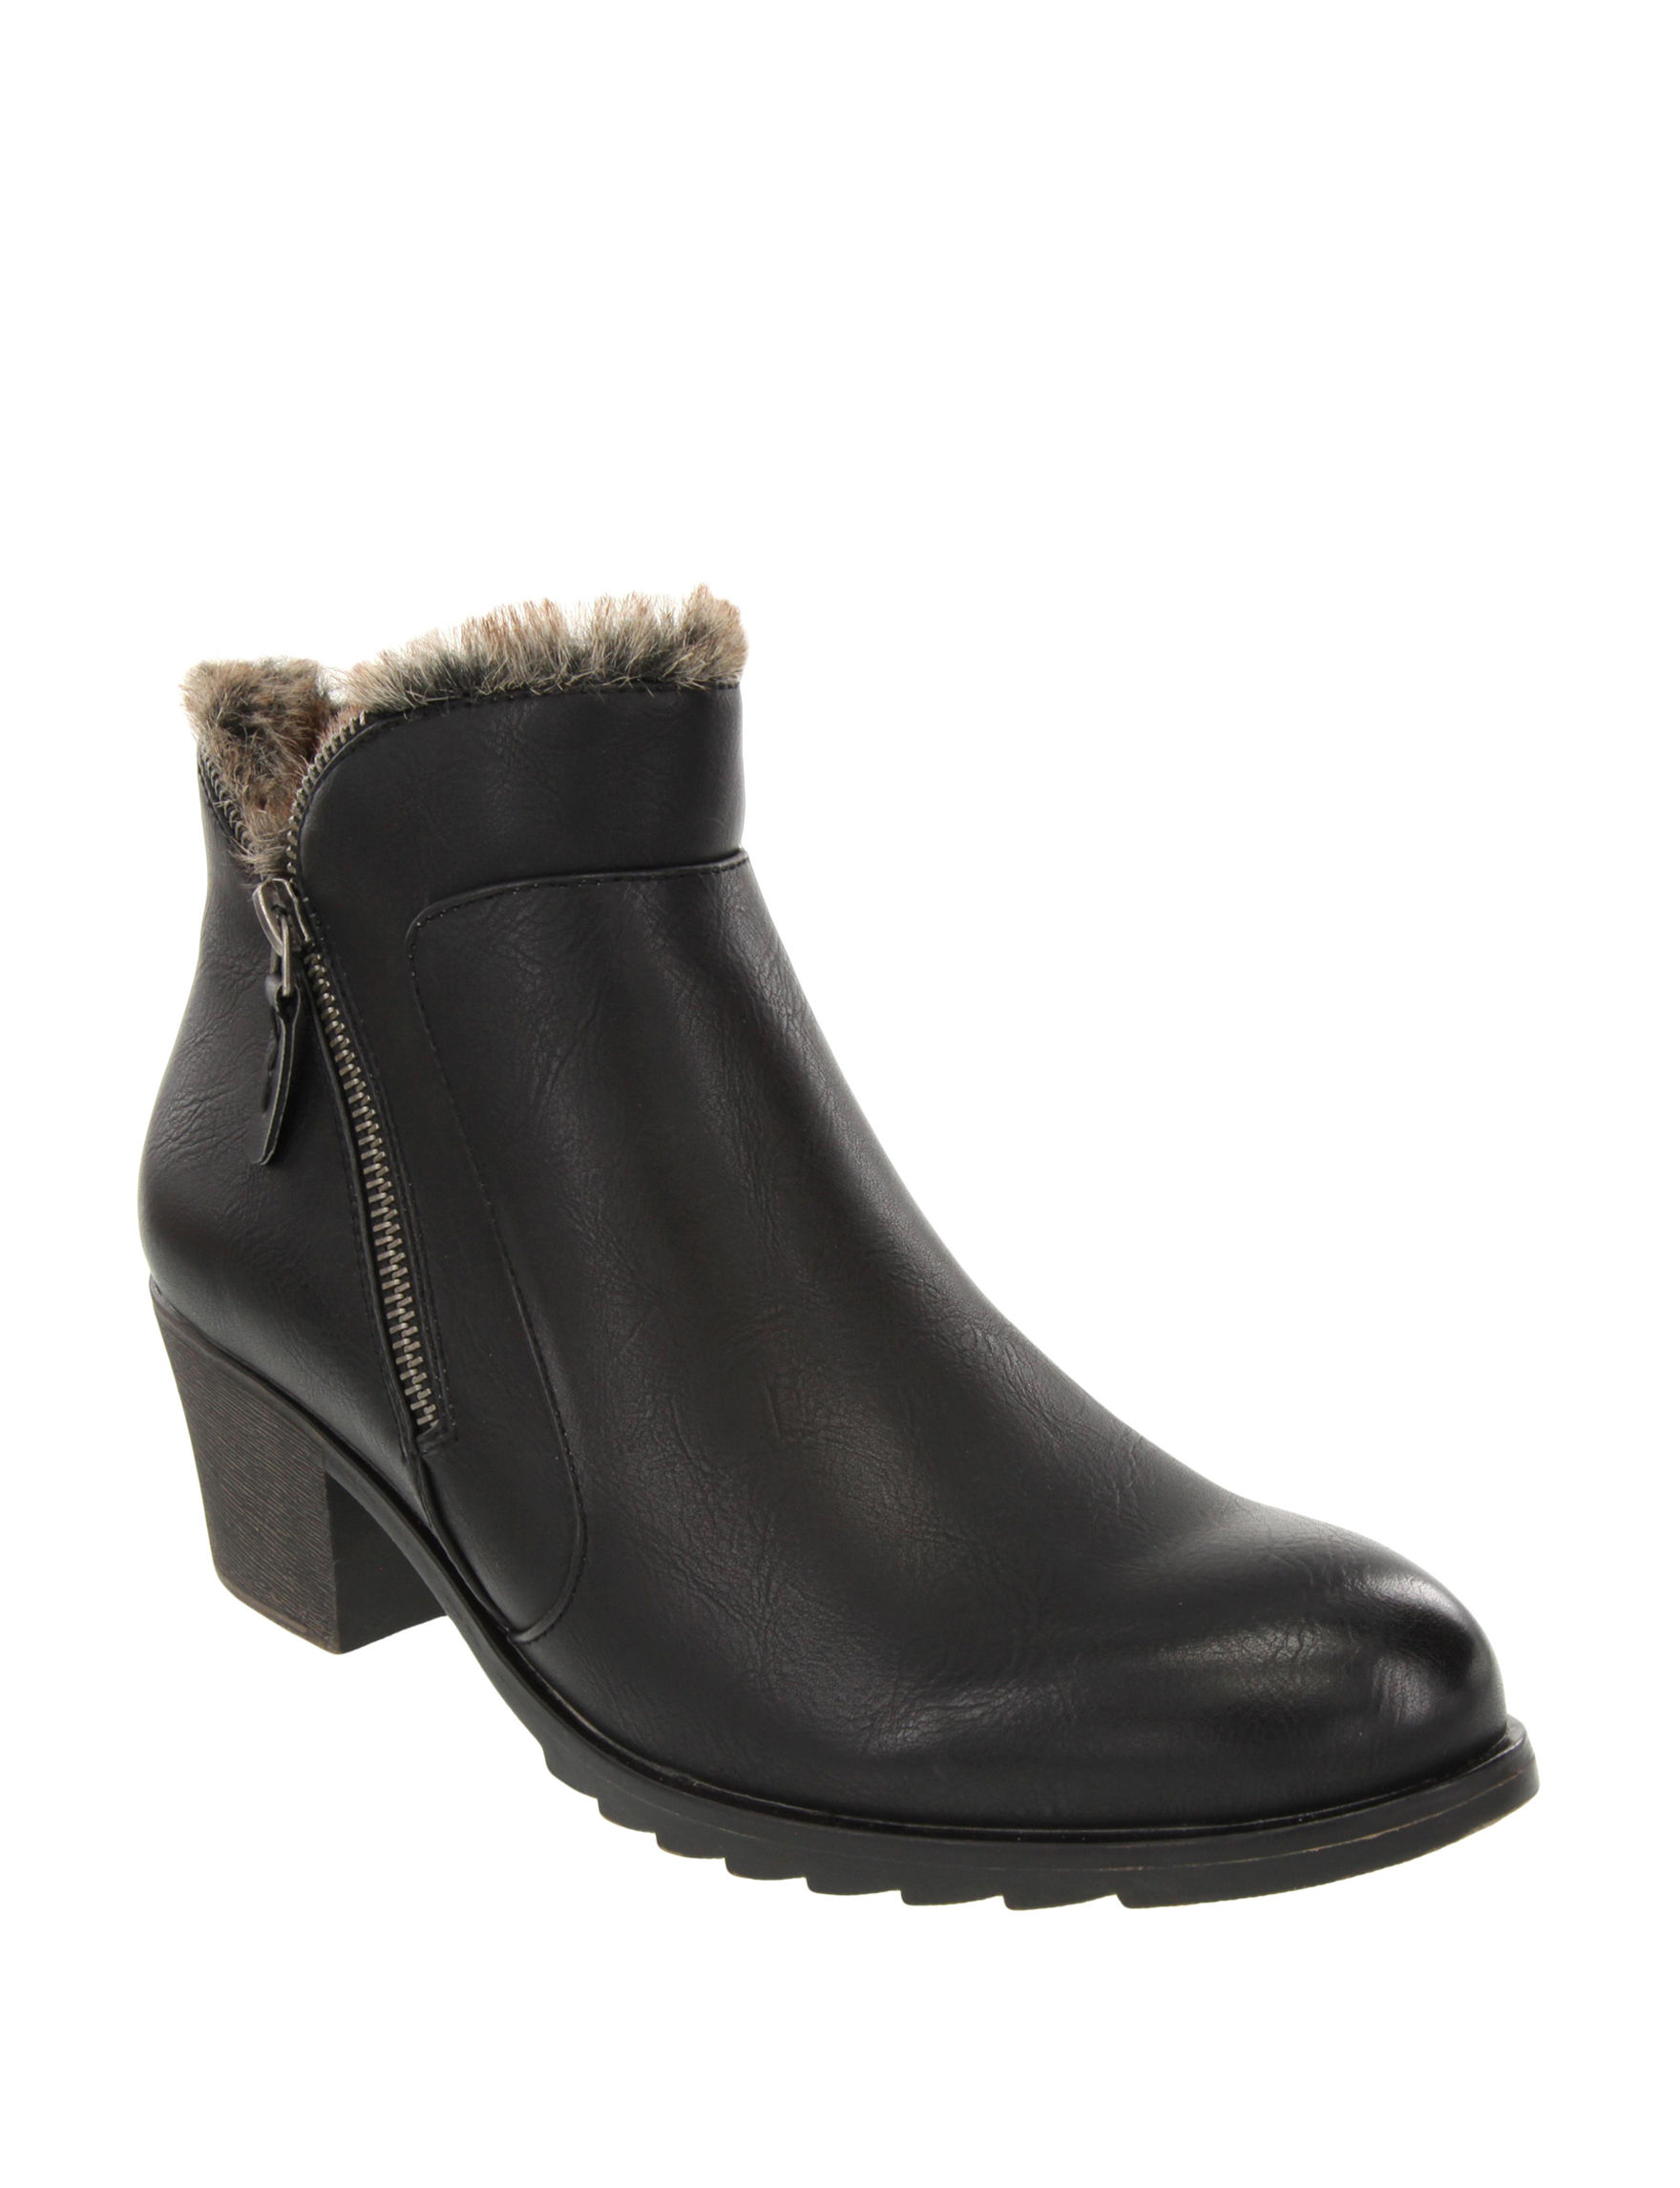 London Fog Black Ankle Boots & Booties